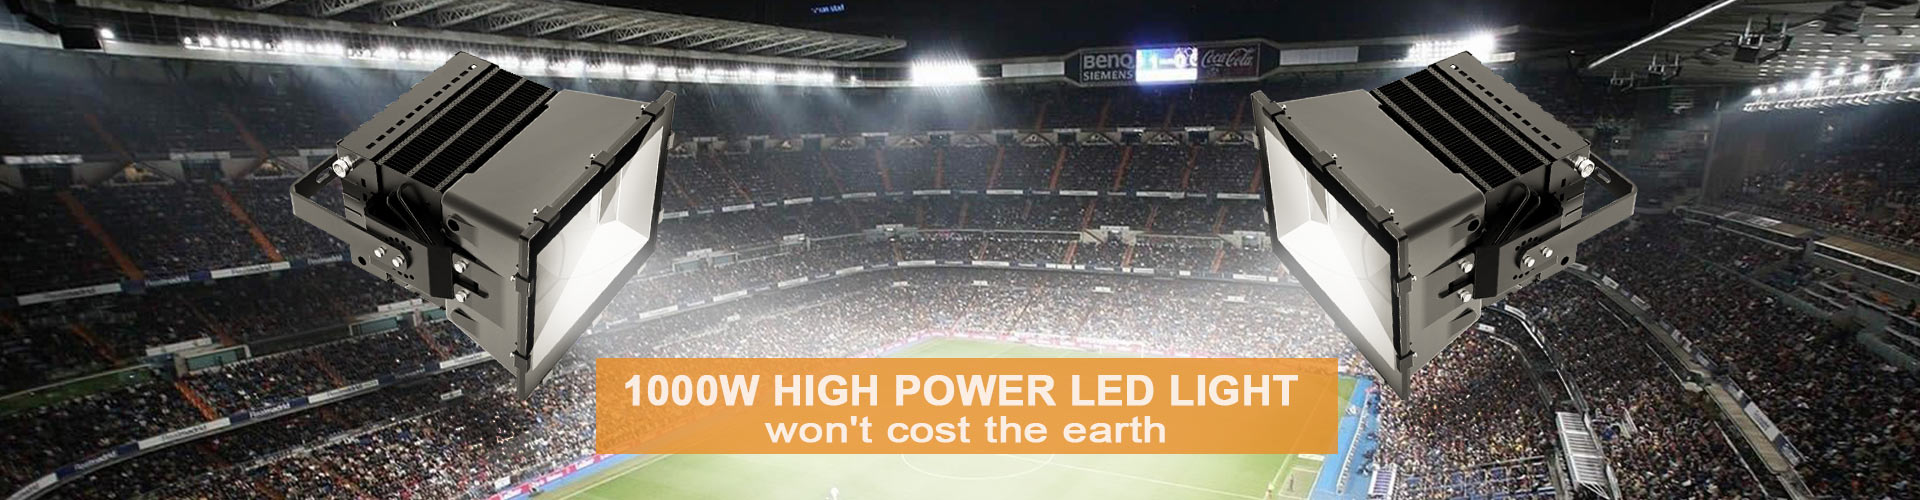 High Power LED Light Manufacturer, supplier